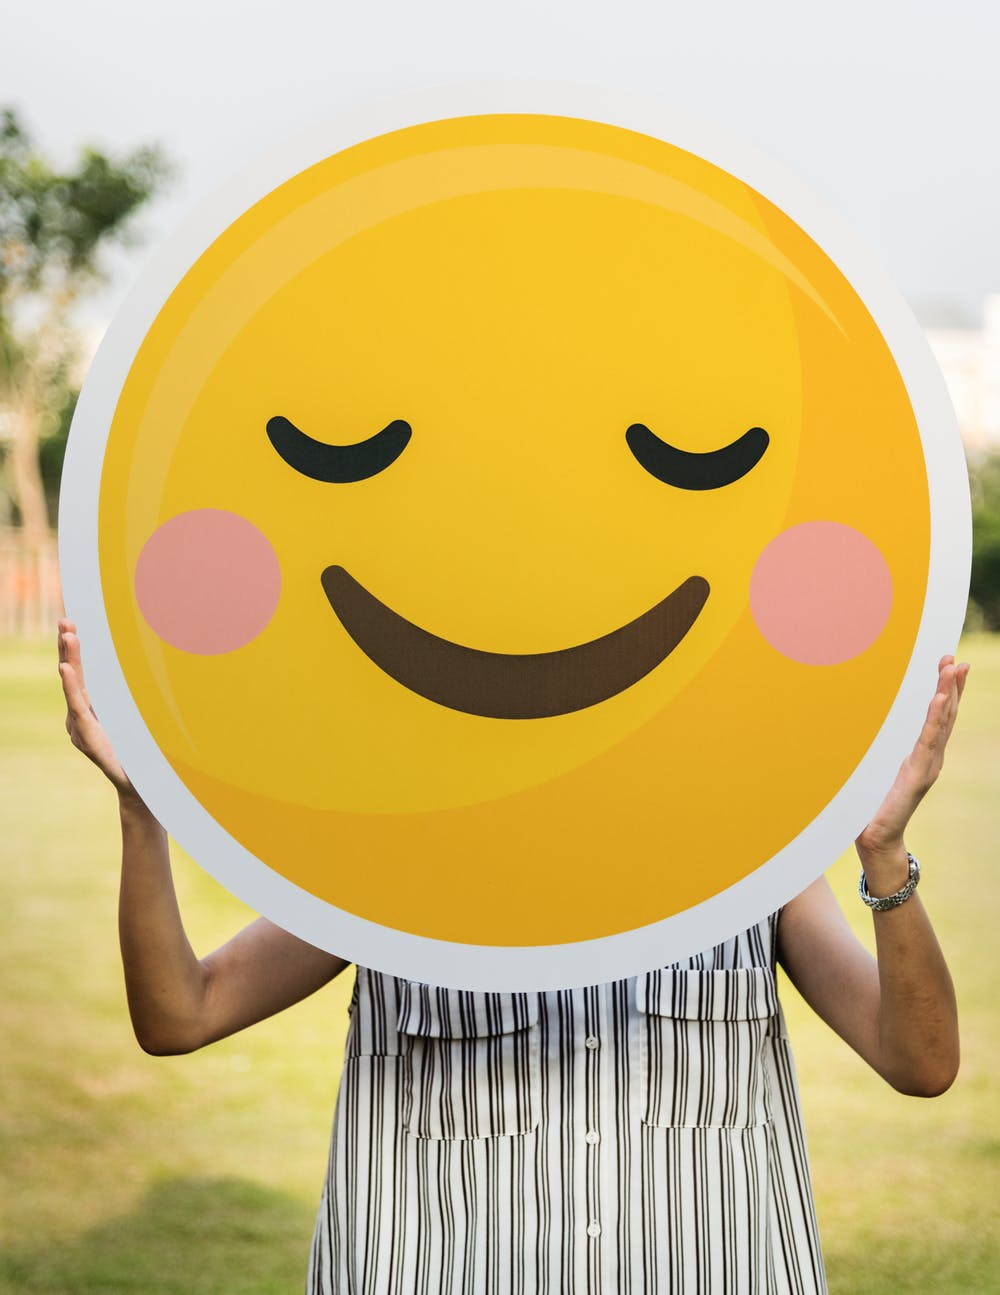 a woman, full of joy after switching to a minimalist lifestyle, holds a smiling emoticon in front of her face